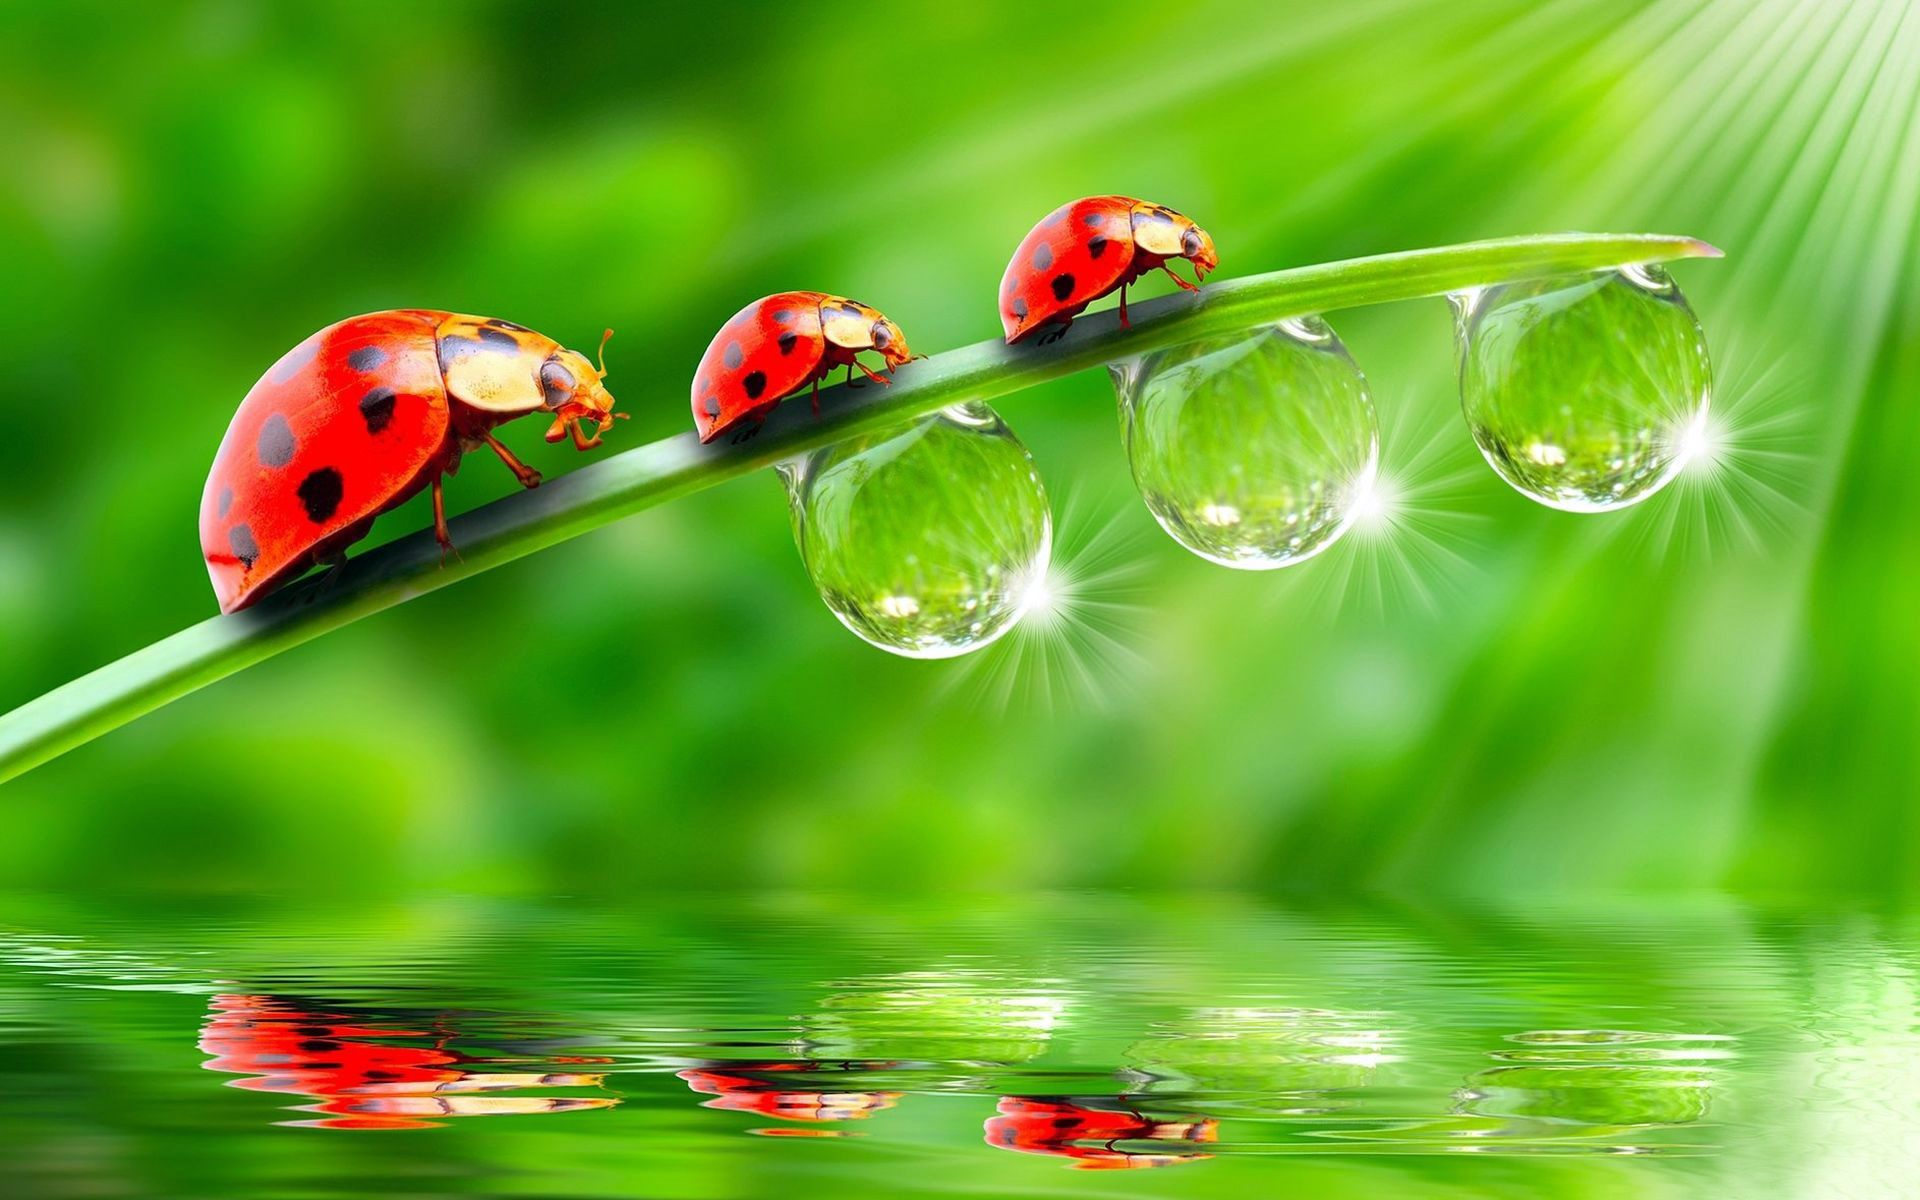 Ladybugs wallpapers and images download wallpapers pictures photos smiles pinterest - Ladybug watering can ...